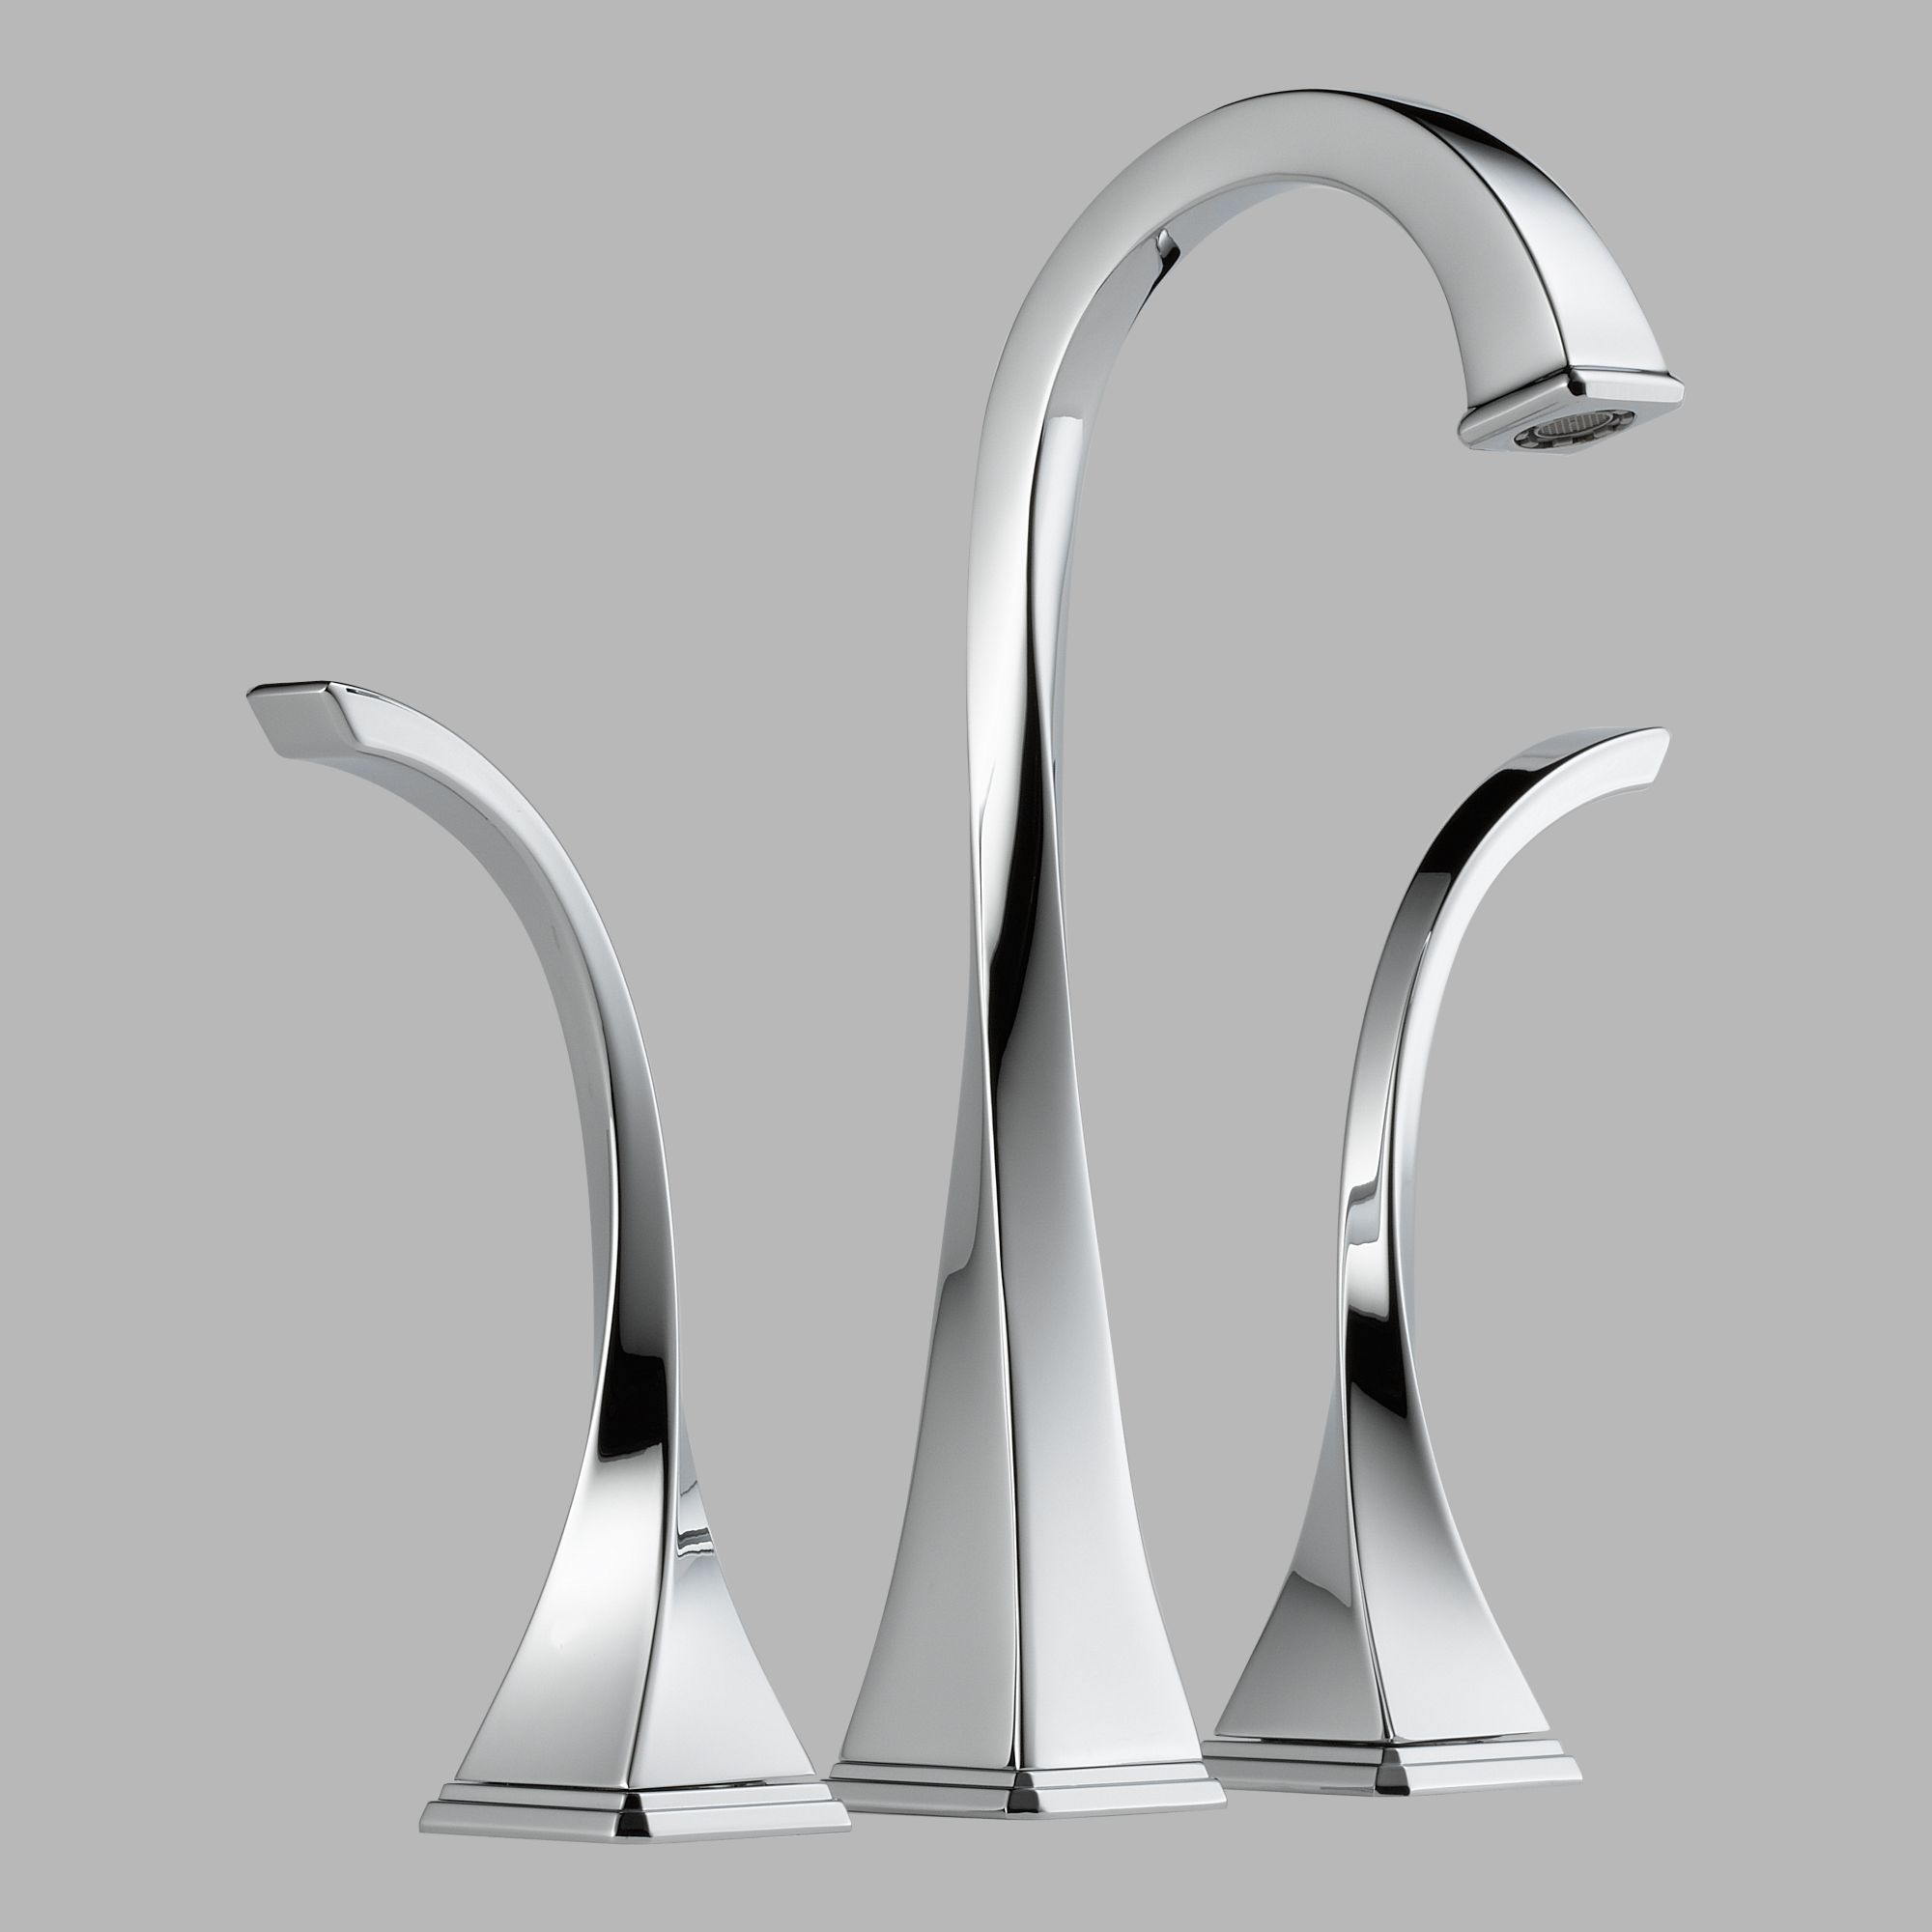 brizo kitchen faucet This Brizo Virage Faucet is so gorgeous and different